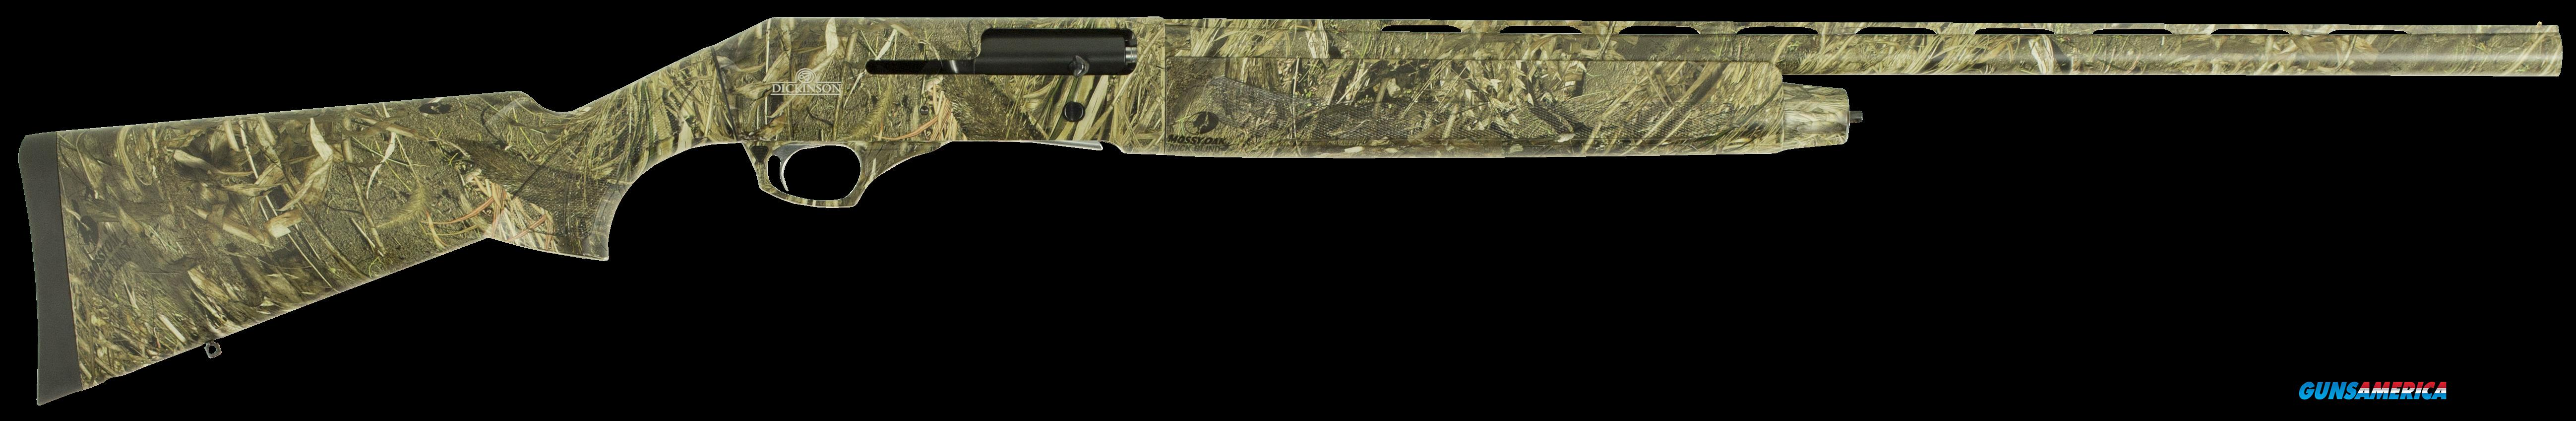 "Dickinson 212C28DB 212 Semi-Automatic 12 Gauge 28"" 3"" Camo Stk Camo  Guns > Shotguns > D Misc Shotguns"